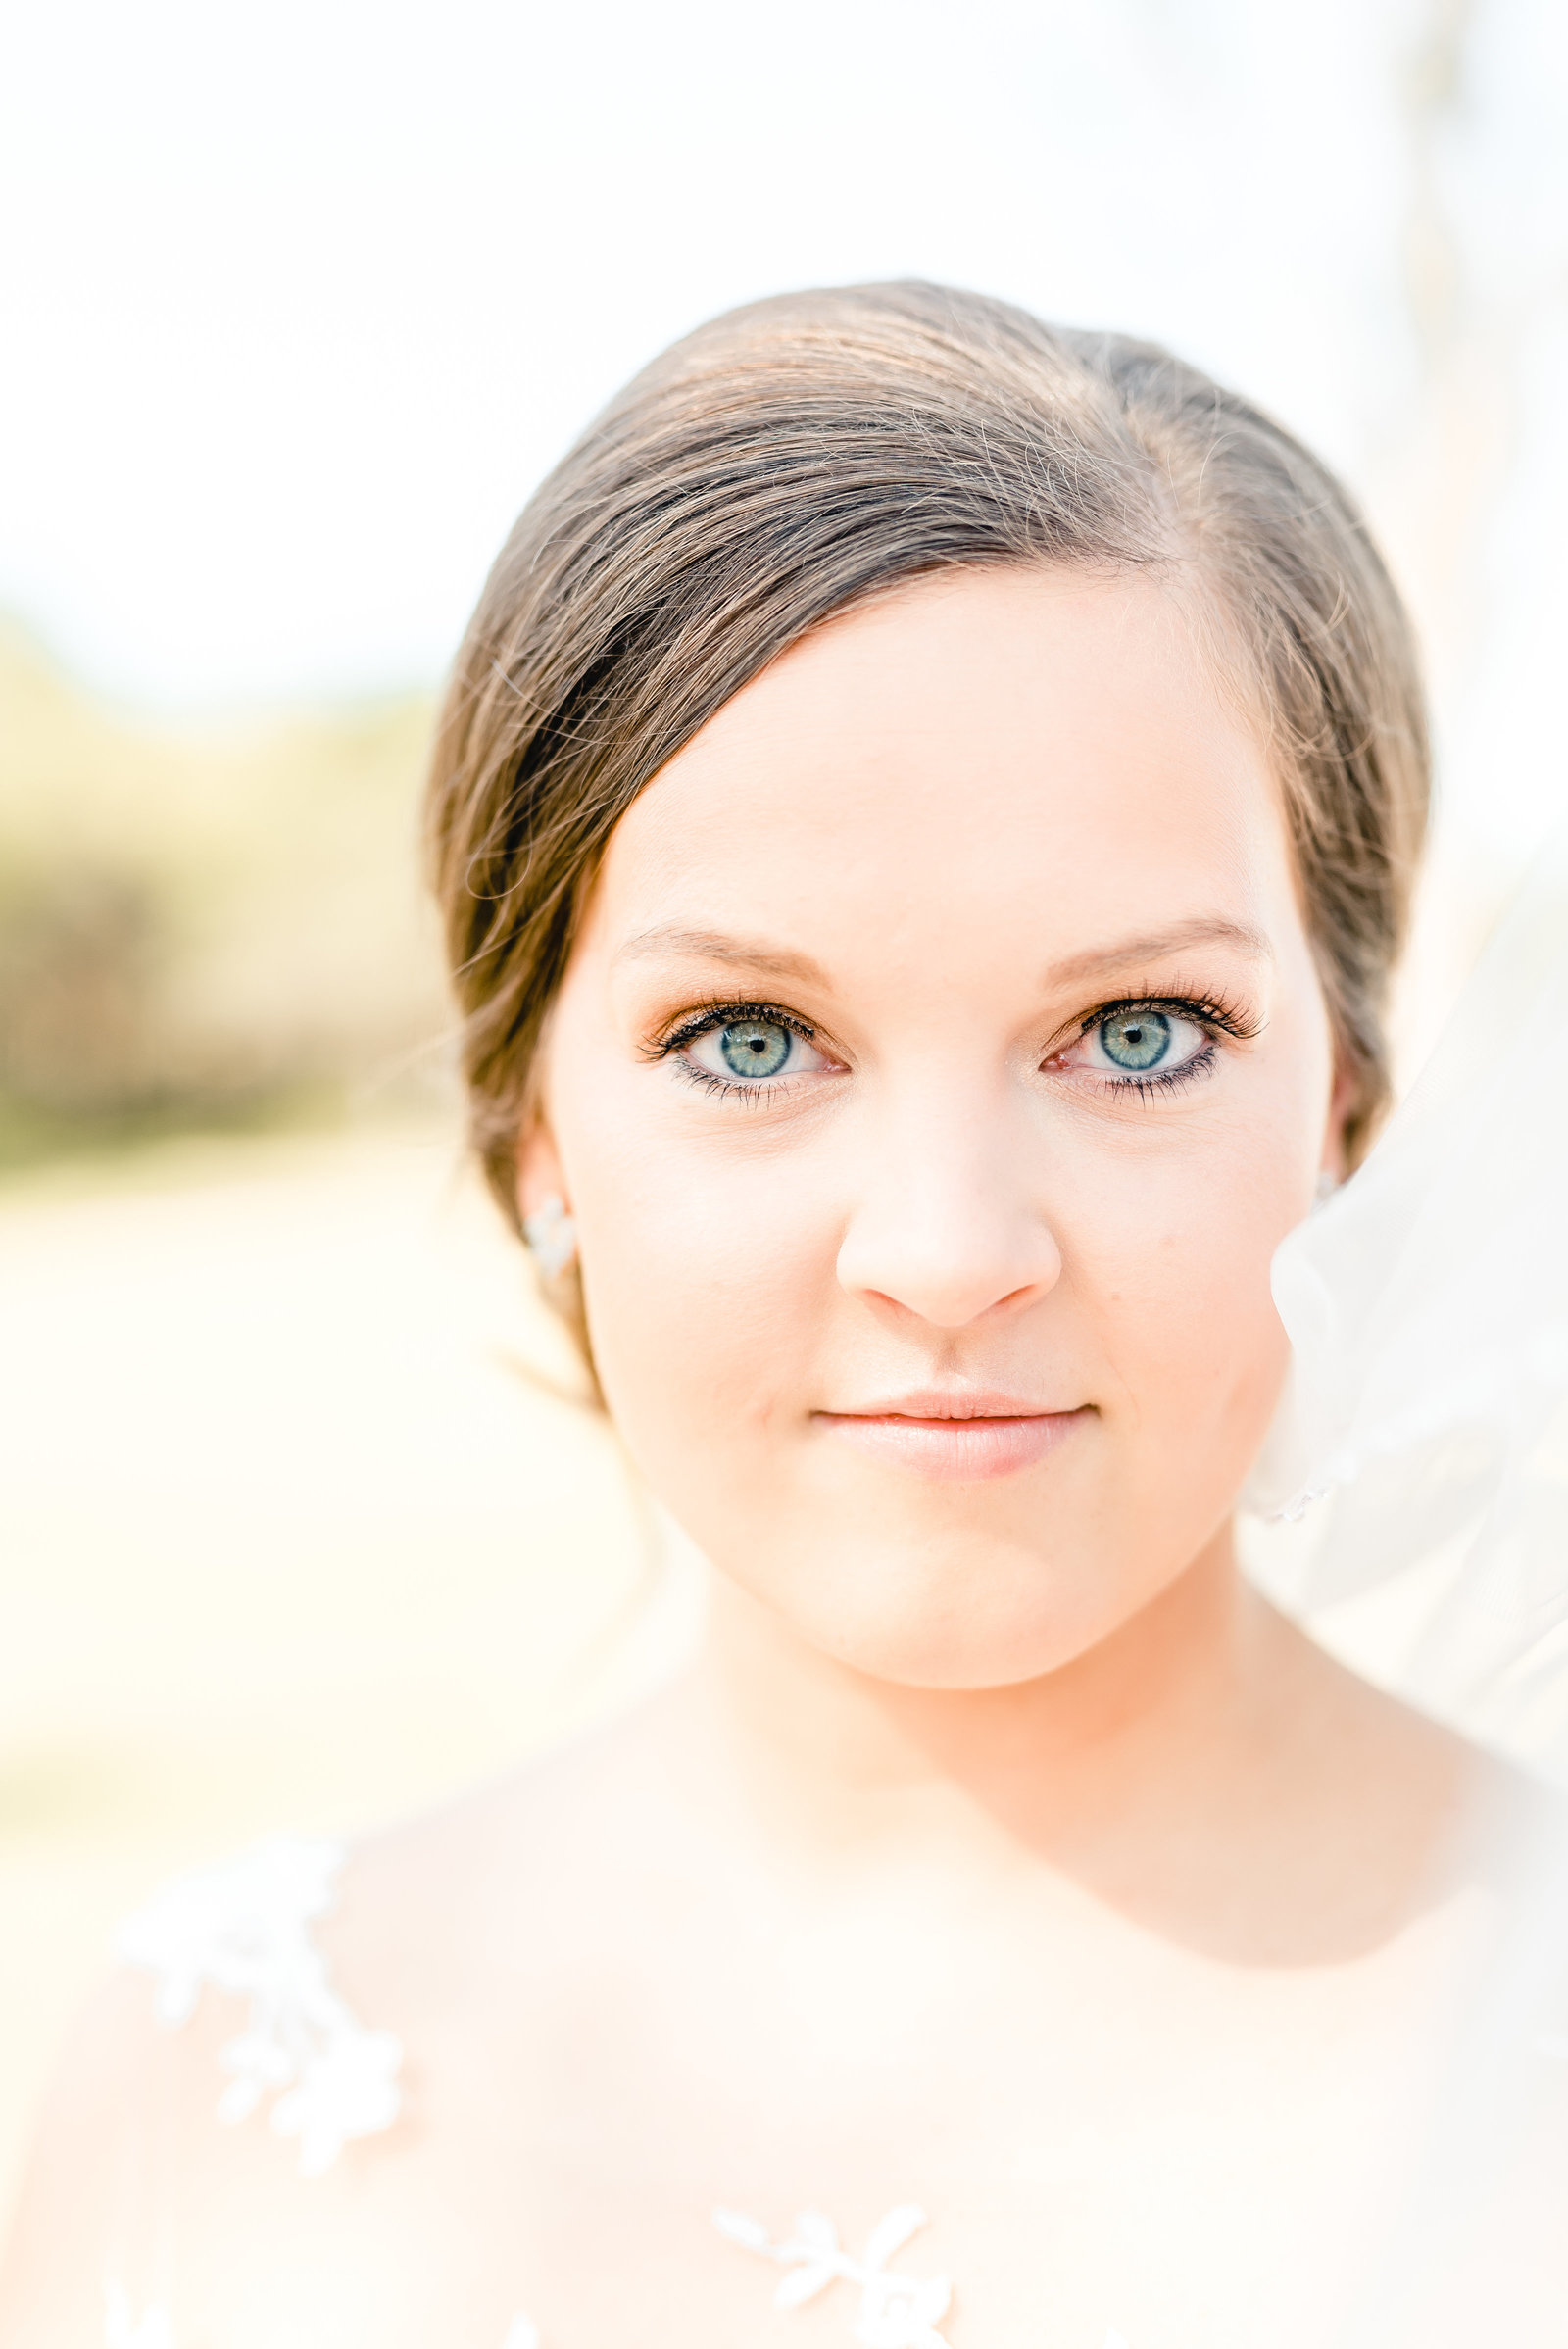 WeiderWeddingBrideandGroomPortraits-23